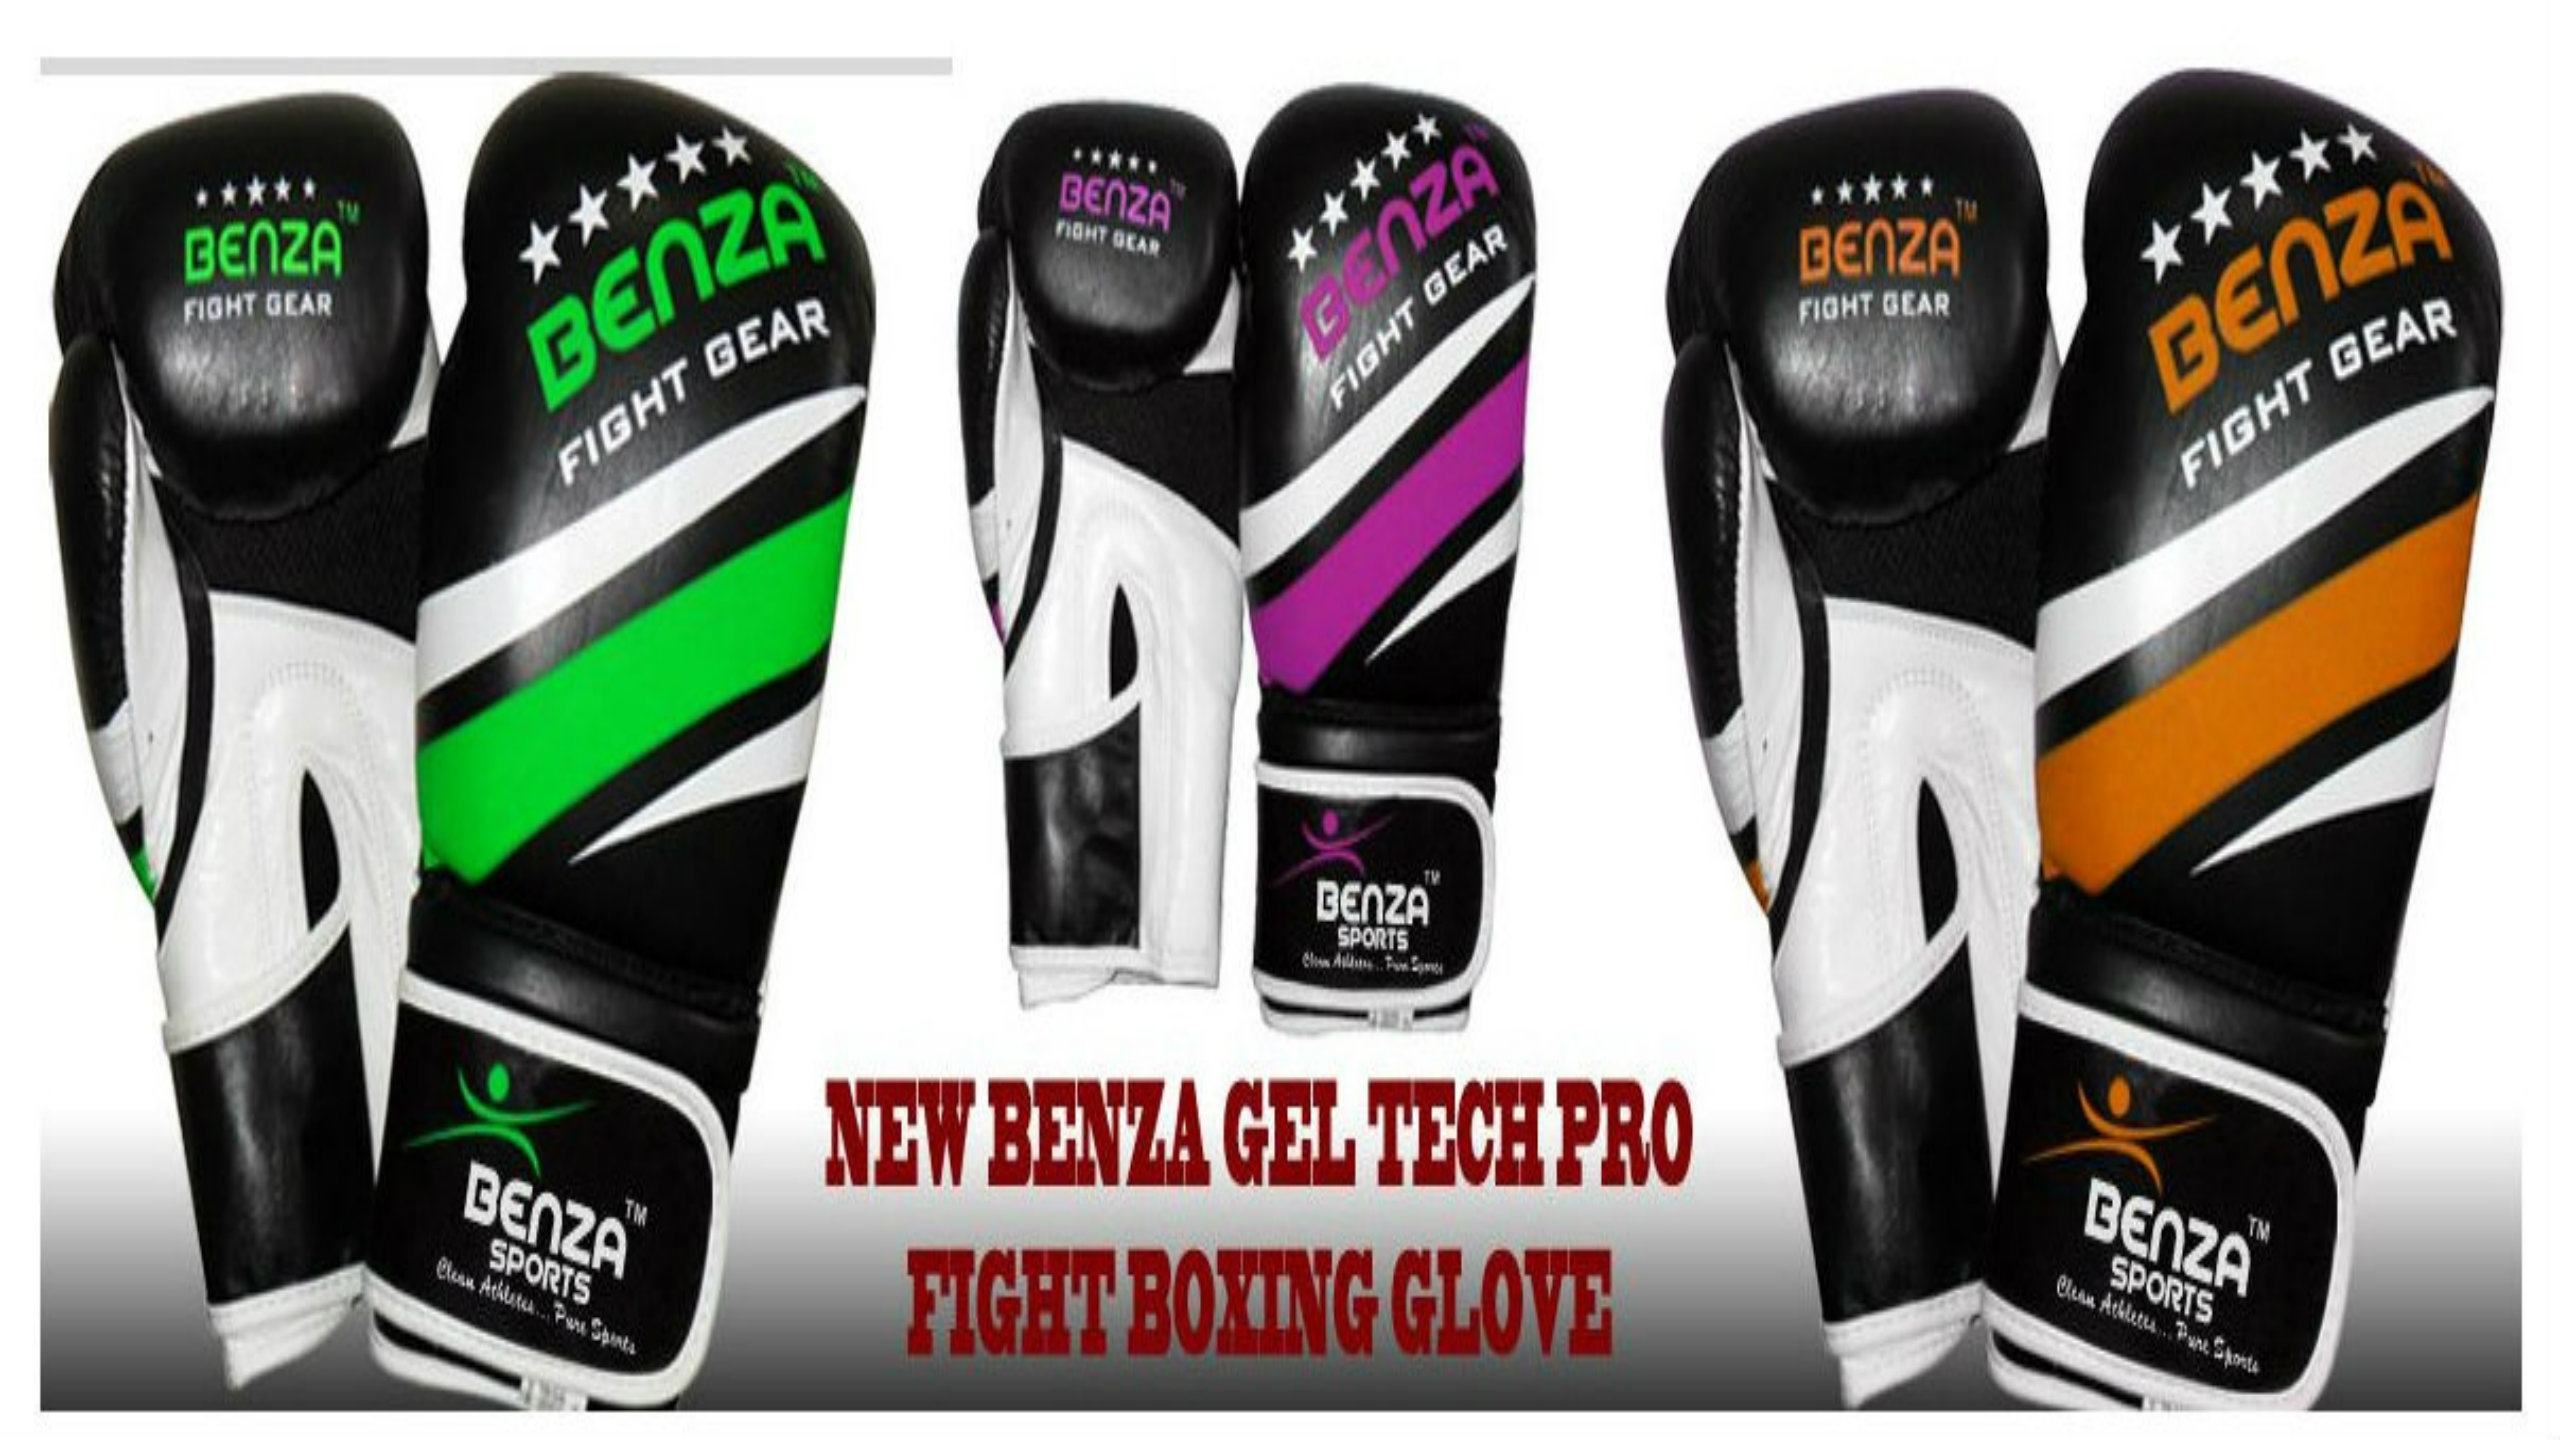 Benza Sports - Martial Arts Equipment Supplies Sto (@benzasports) Cover Image